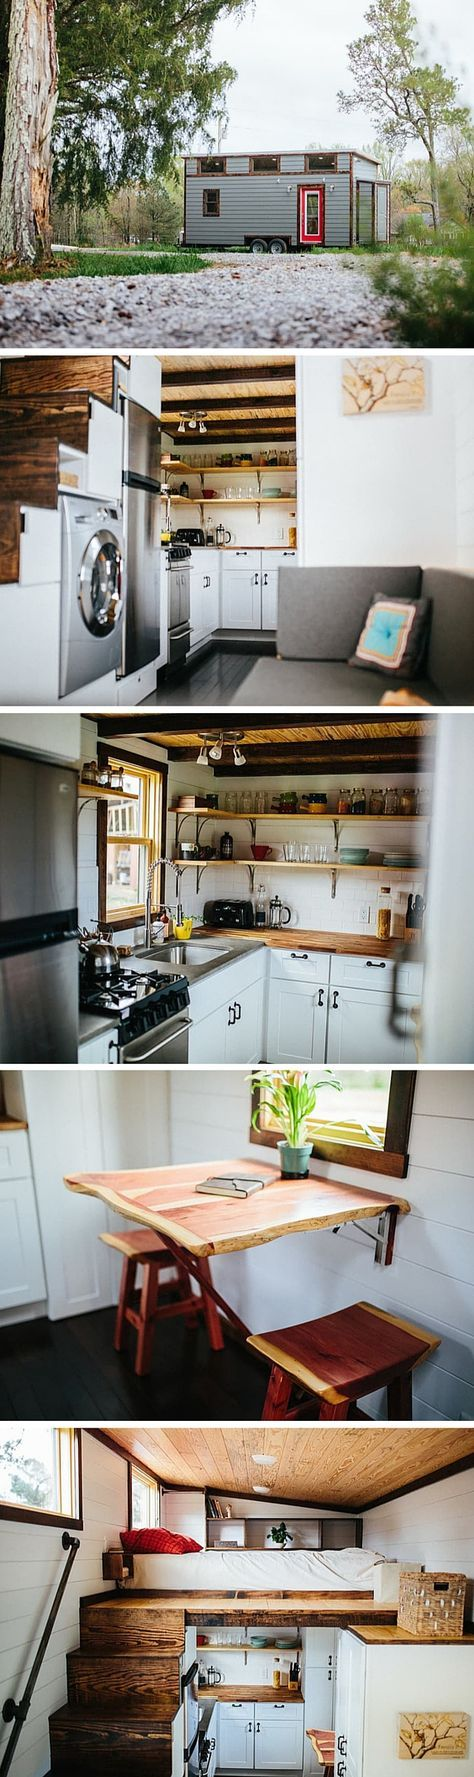 The Chimera tiny house by Wind River Homes. A 192 sq ft tiny house on wheels pri…